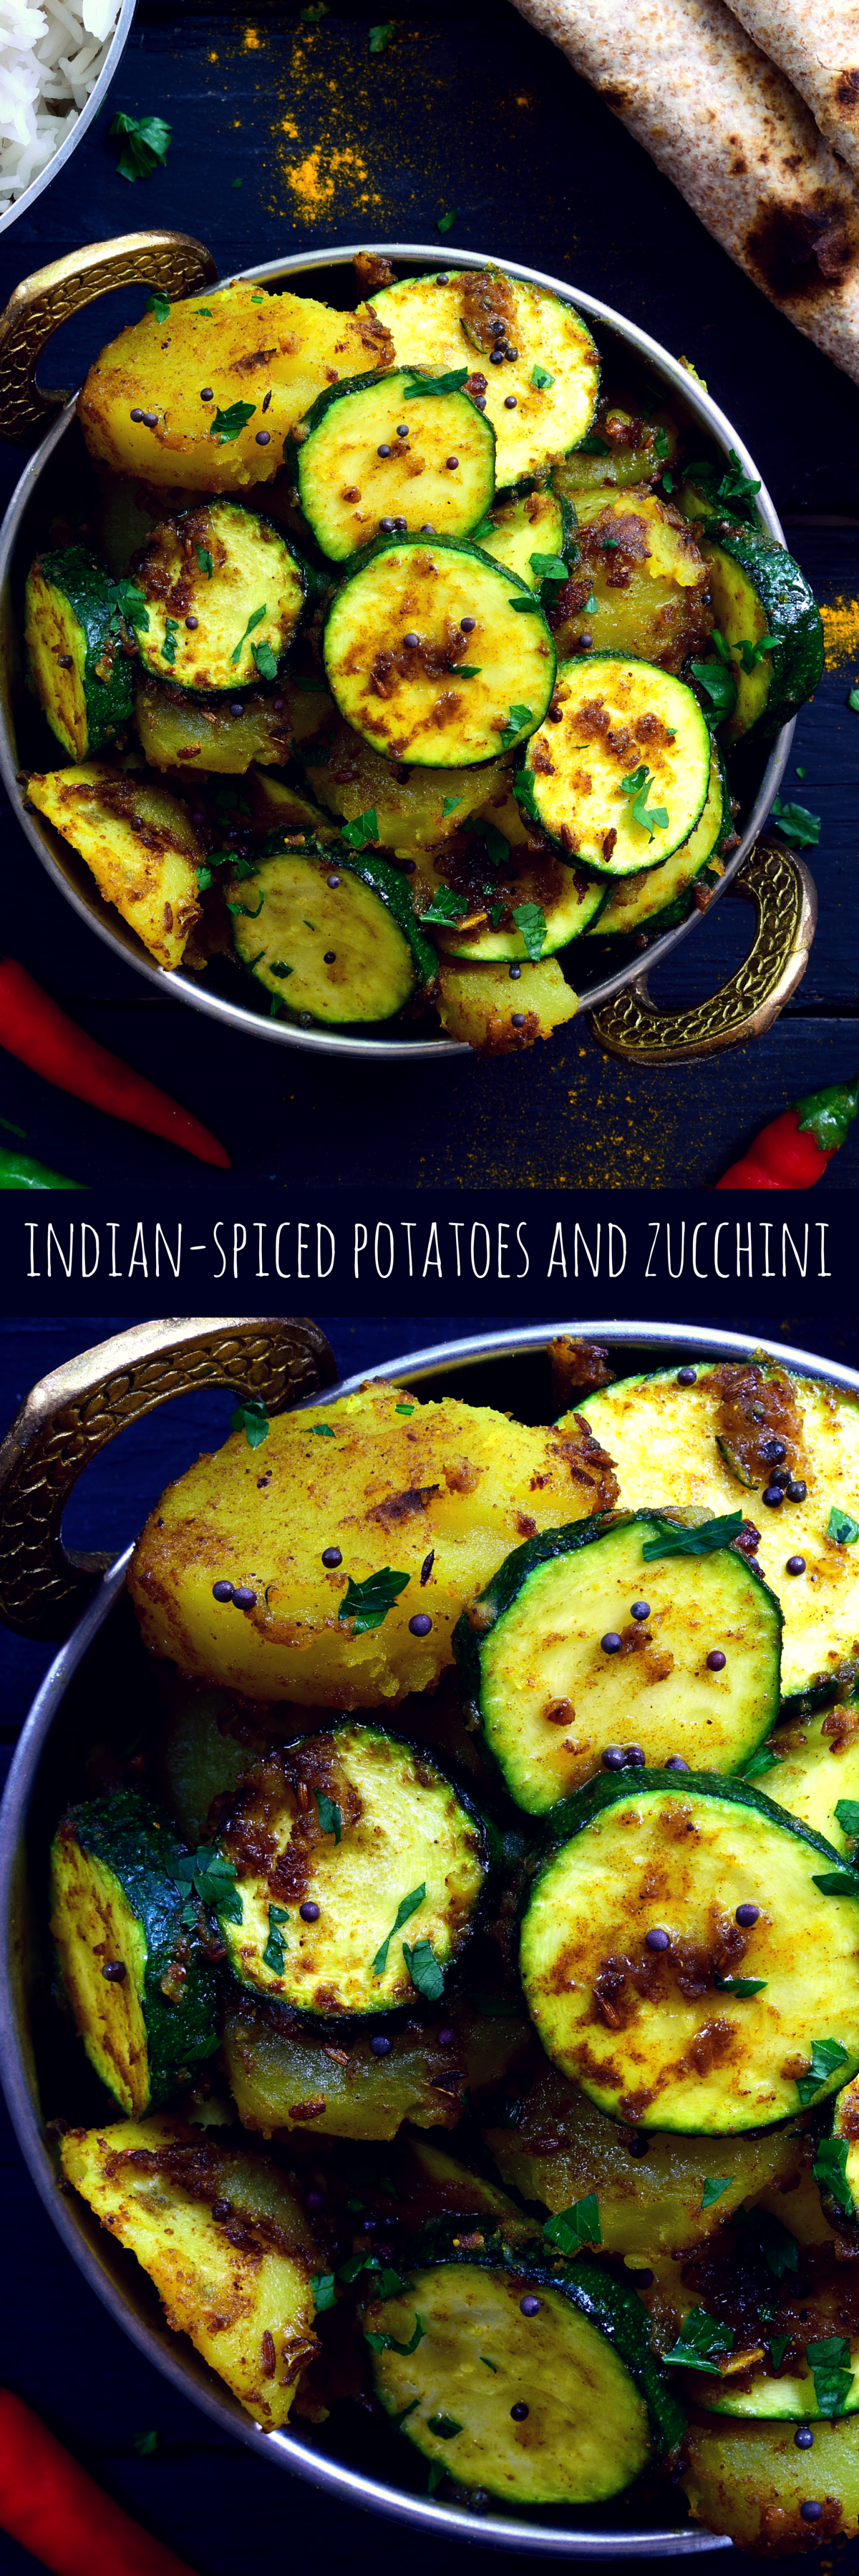 Indian spiced potatoes and zucchini recipe chapati naan and food forumfinder Image collections